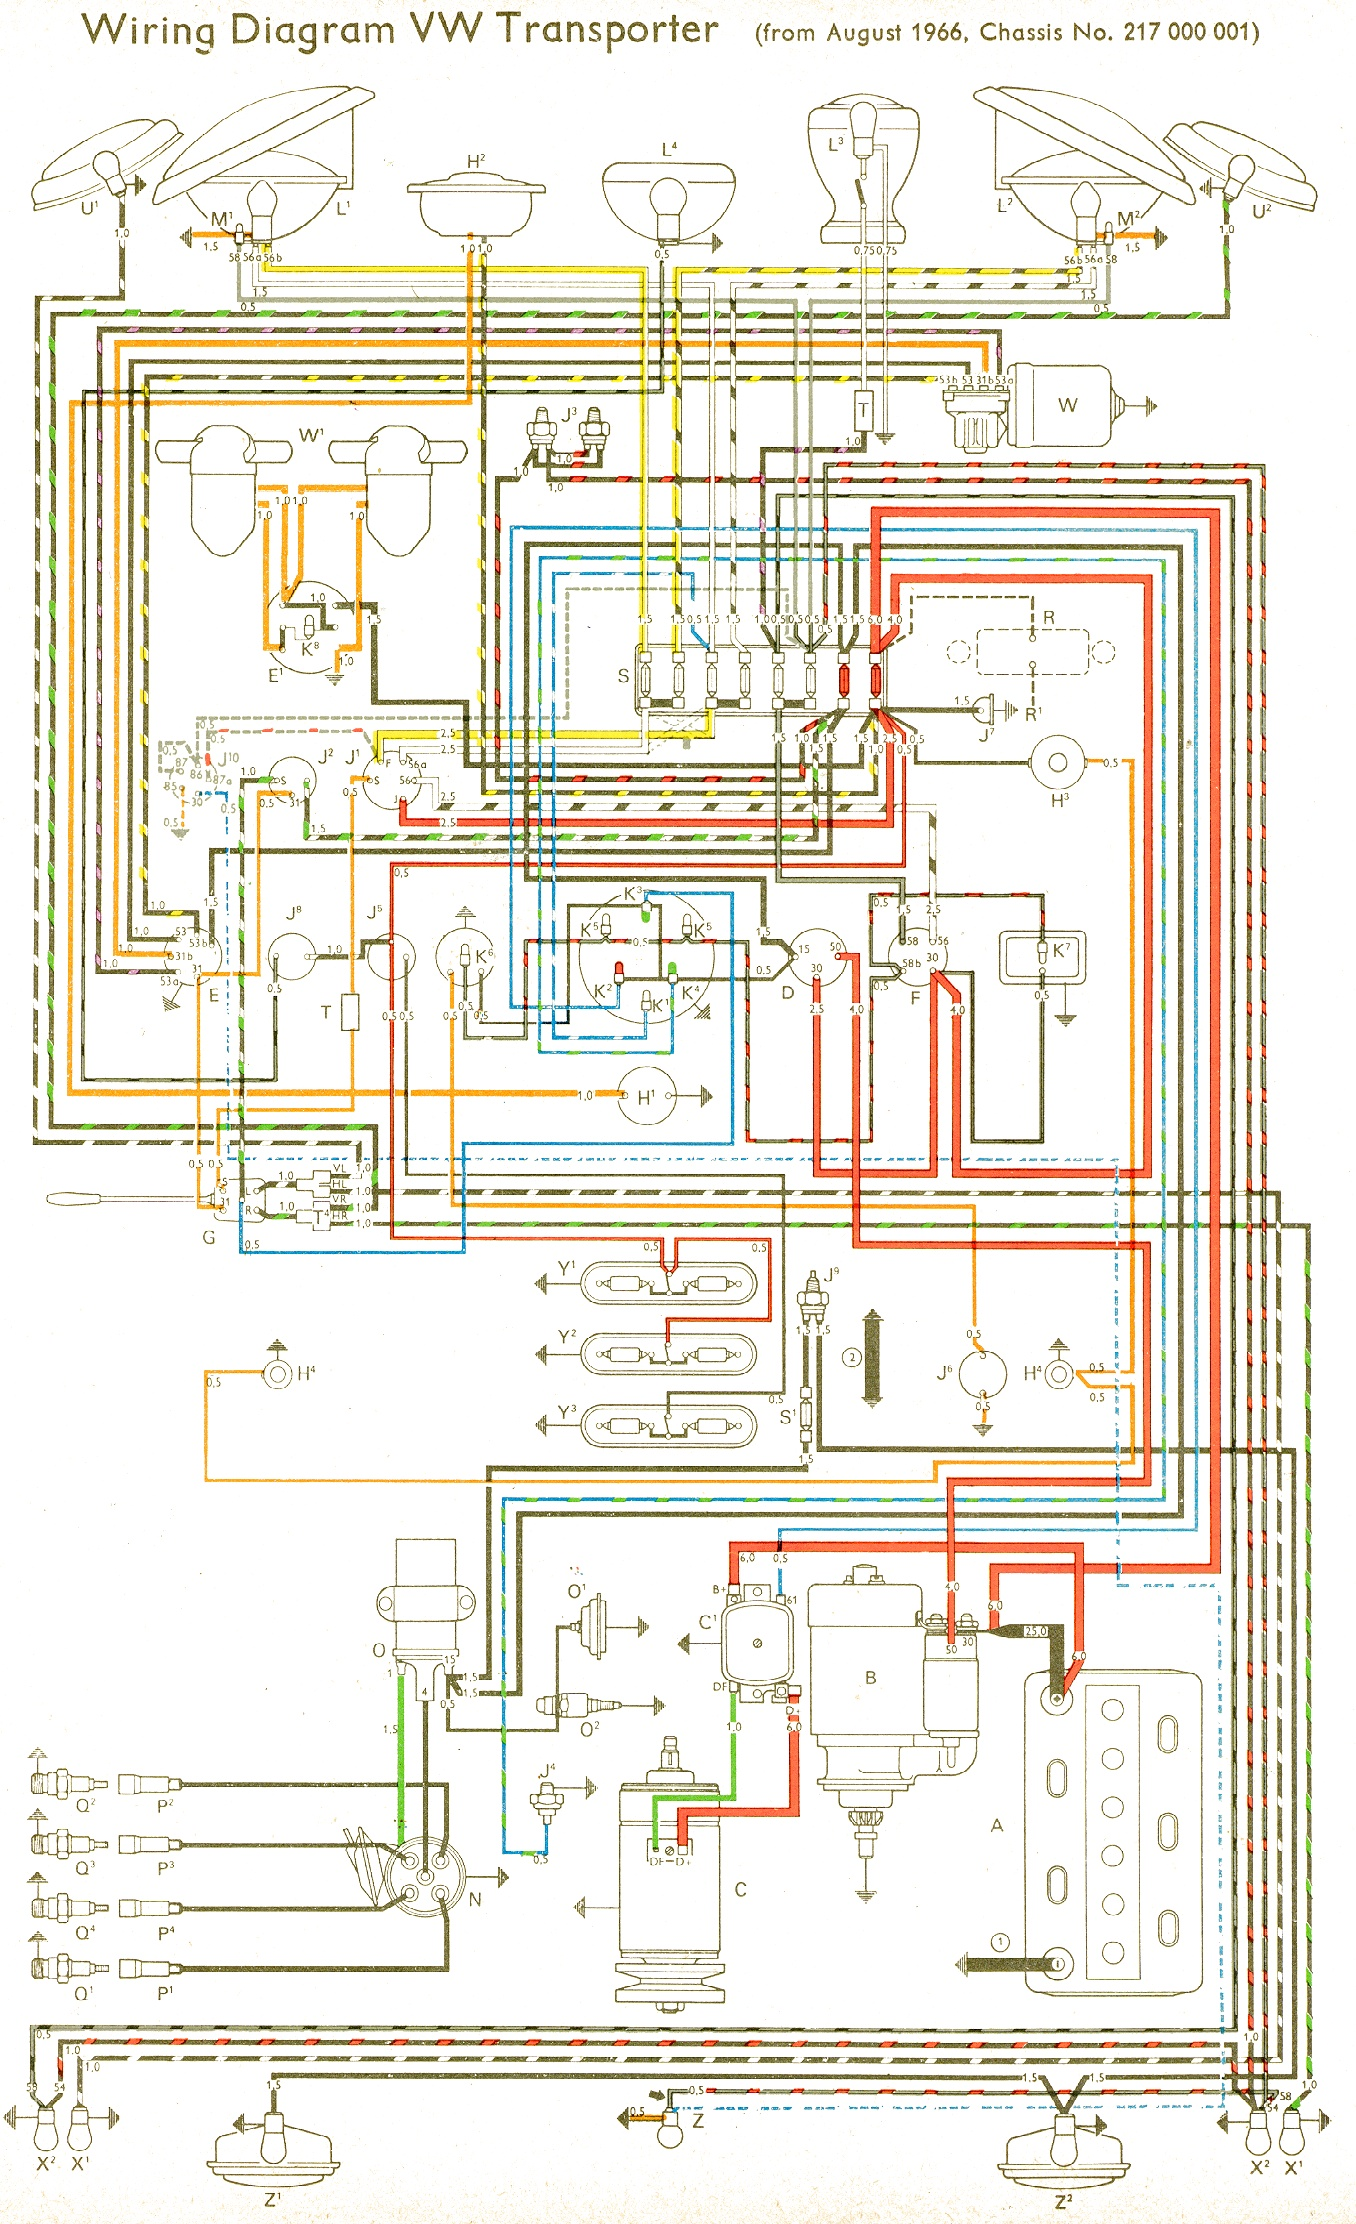 VW Wiring Diagrams | 1979 Vw Transporter Wiring Diagram |  | www.volkspower.nl